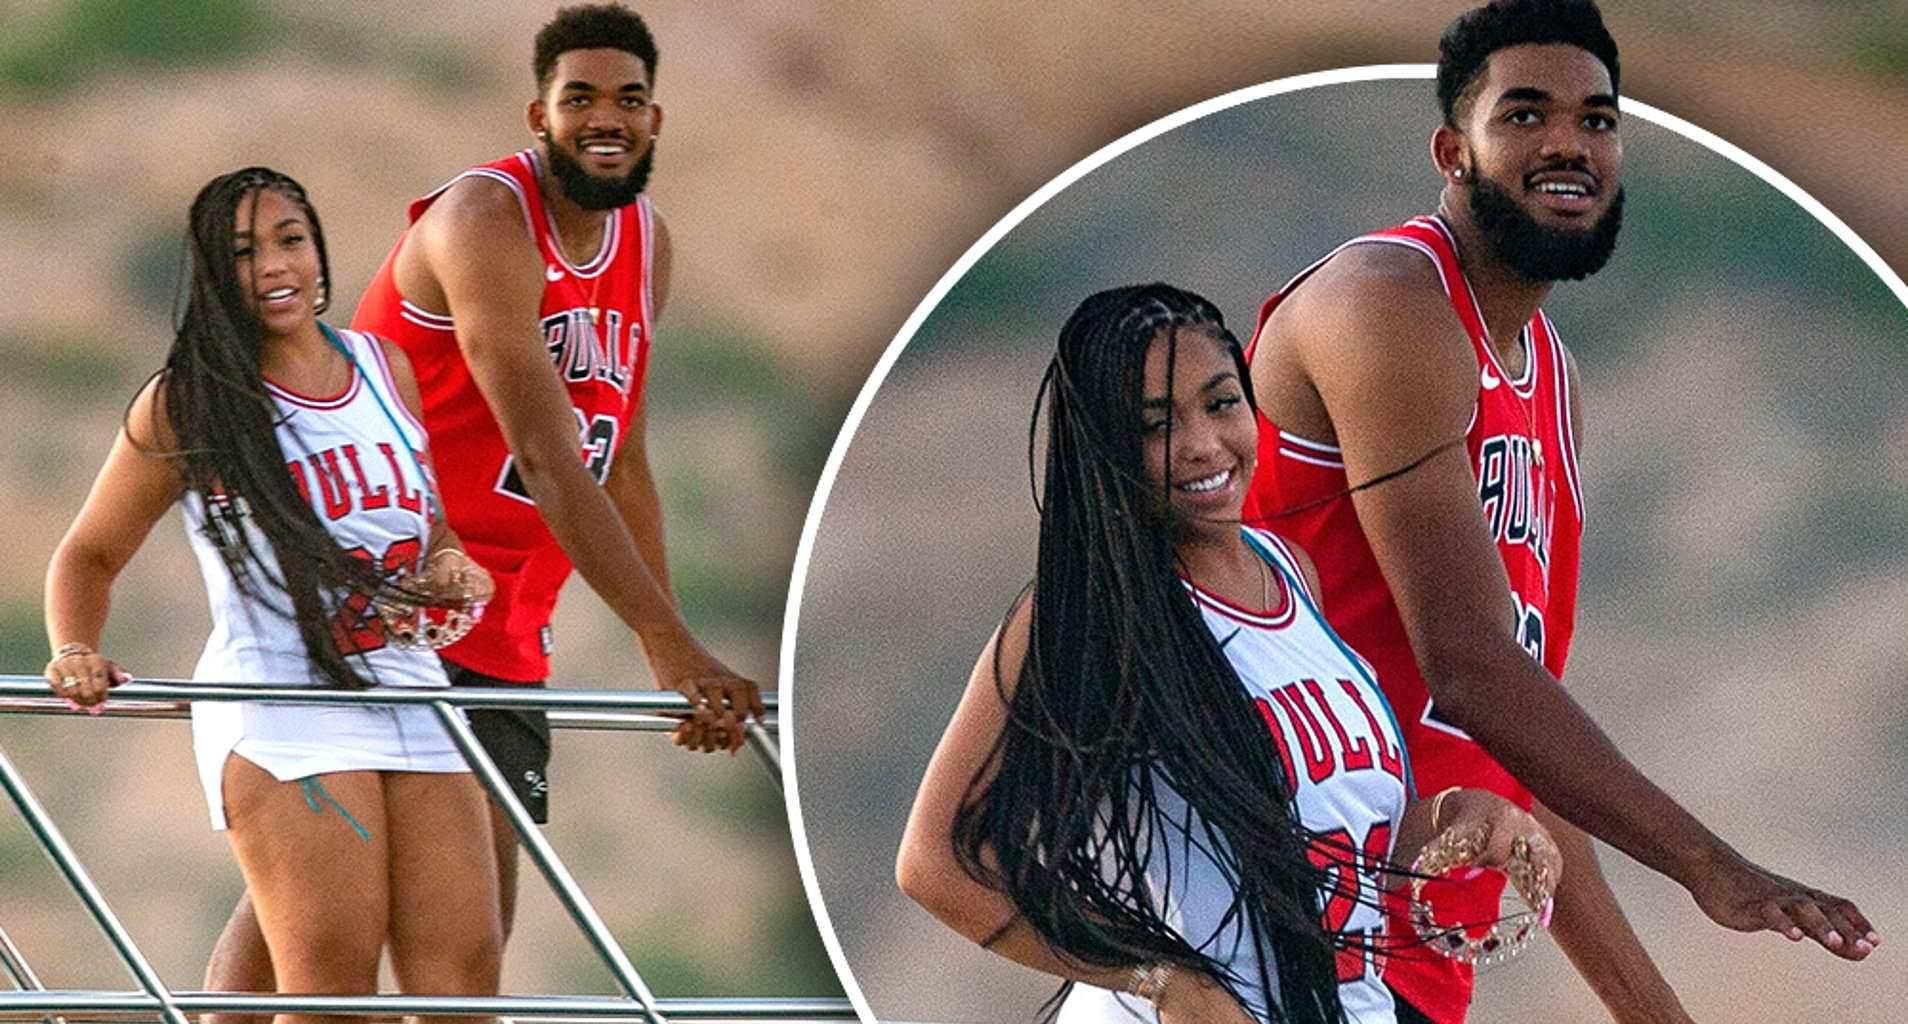 Jordyn Woods' Fans Enjoyed Her Quick Vlog On YouTube - See The Video